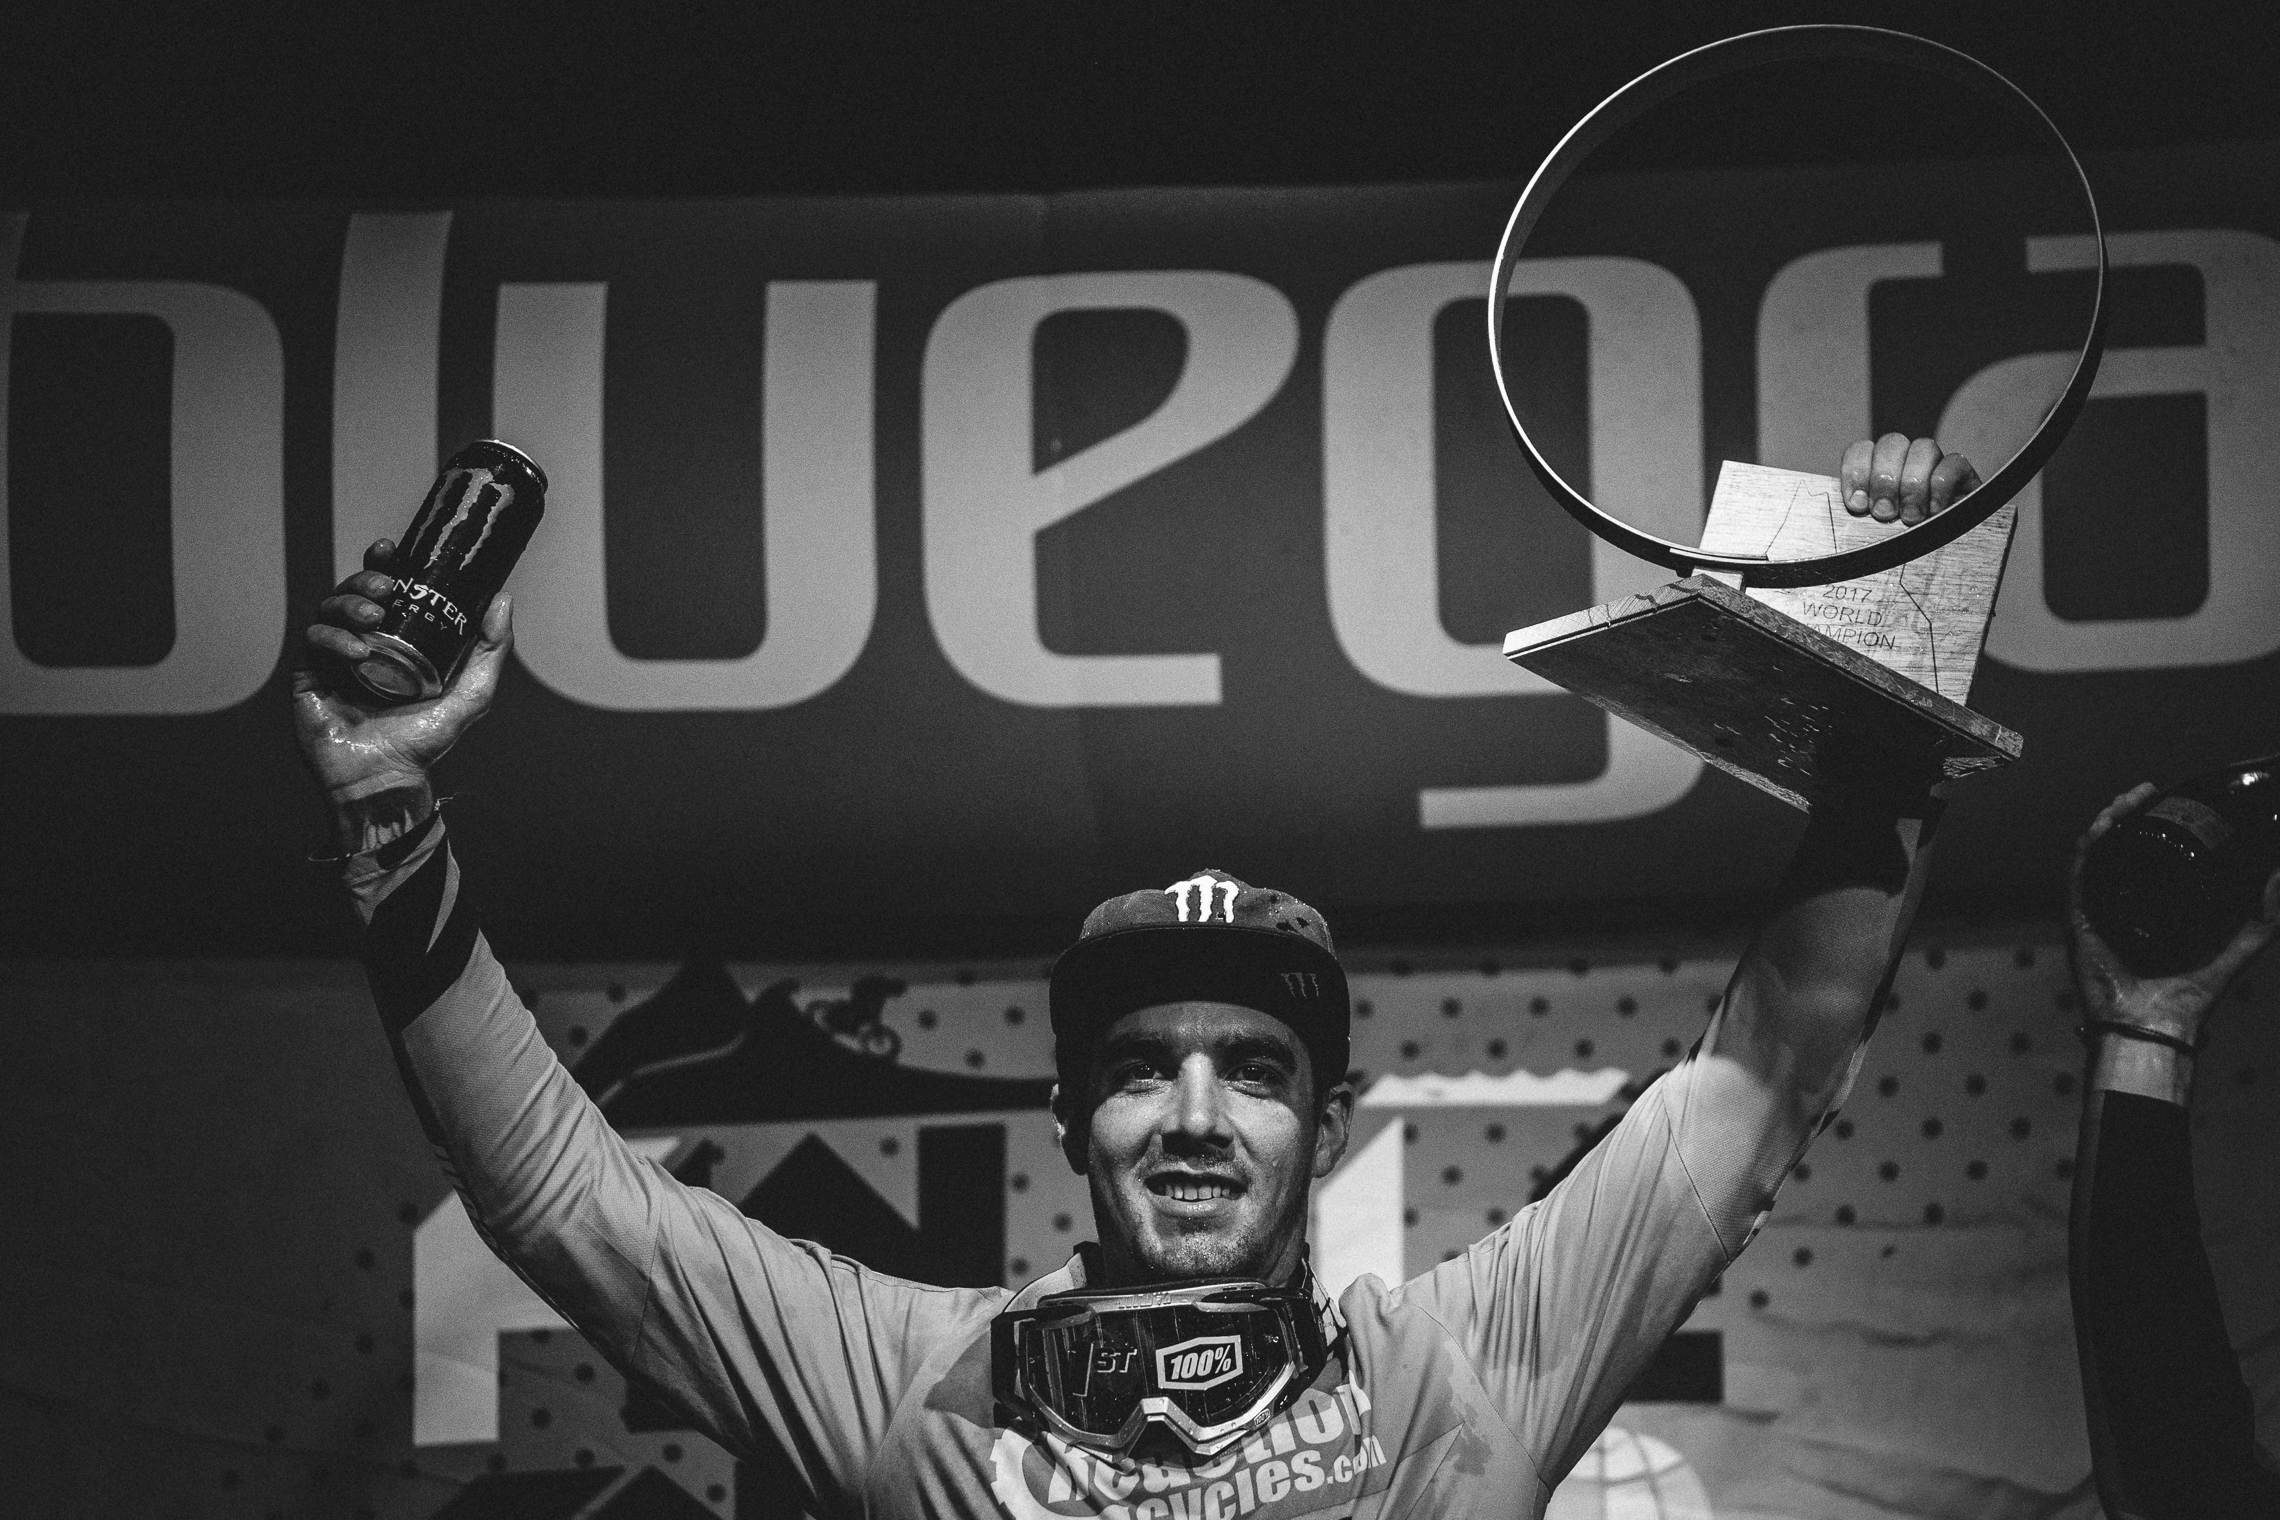 Sam Hill wins the 2017 overall Enduro World Series title